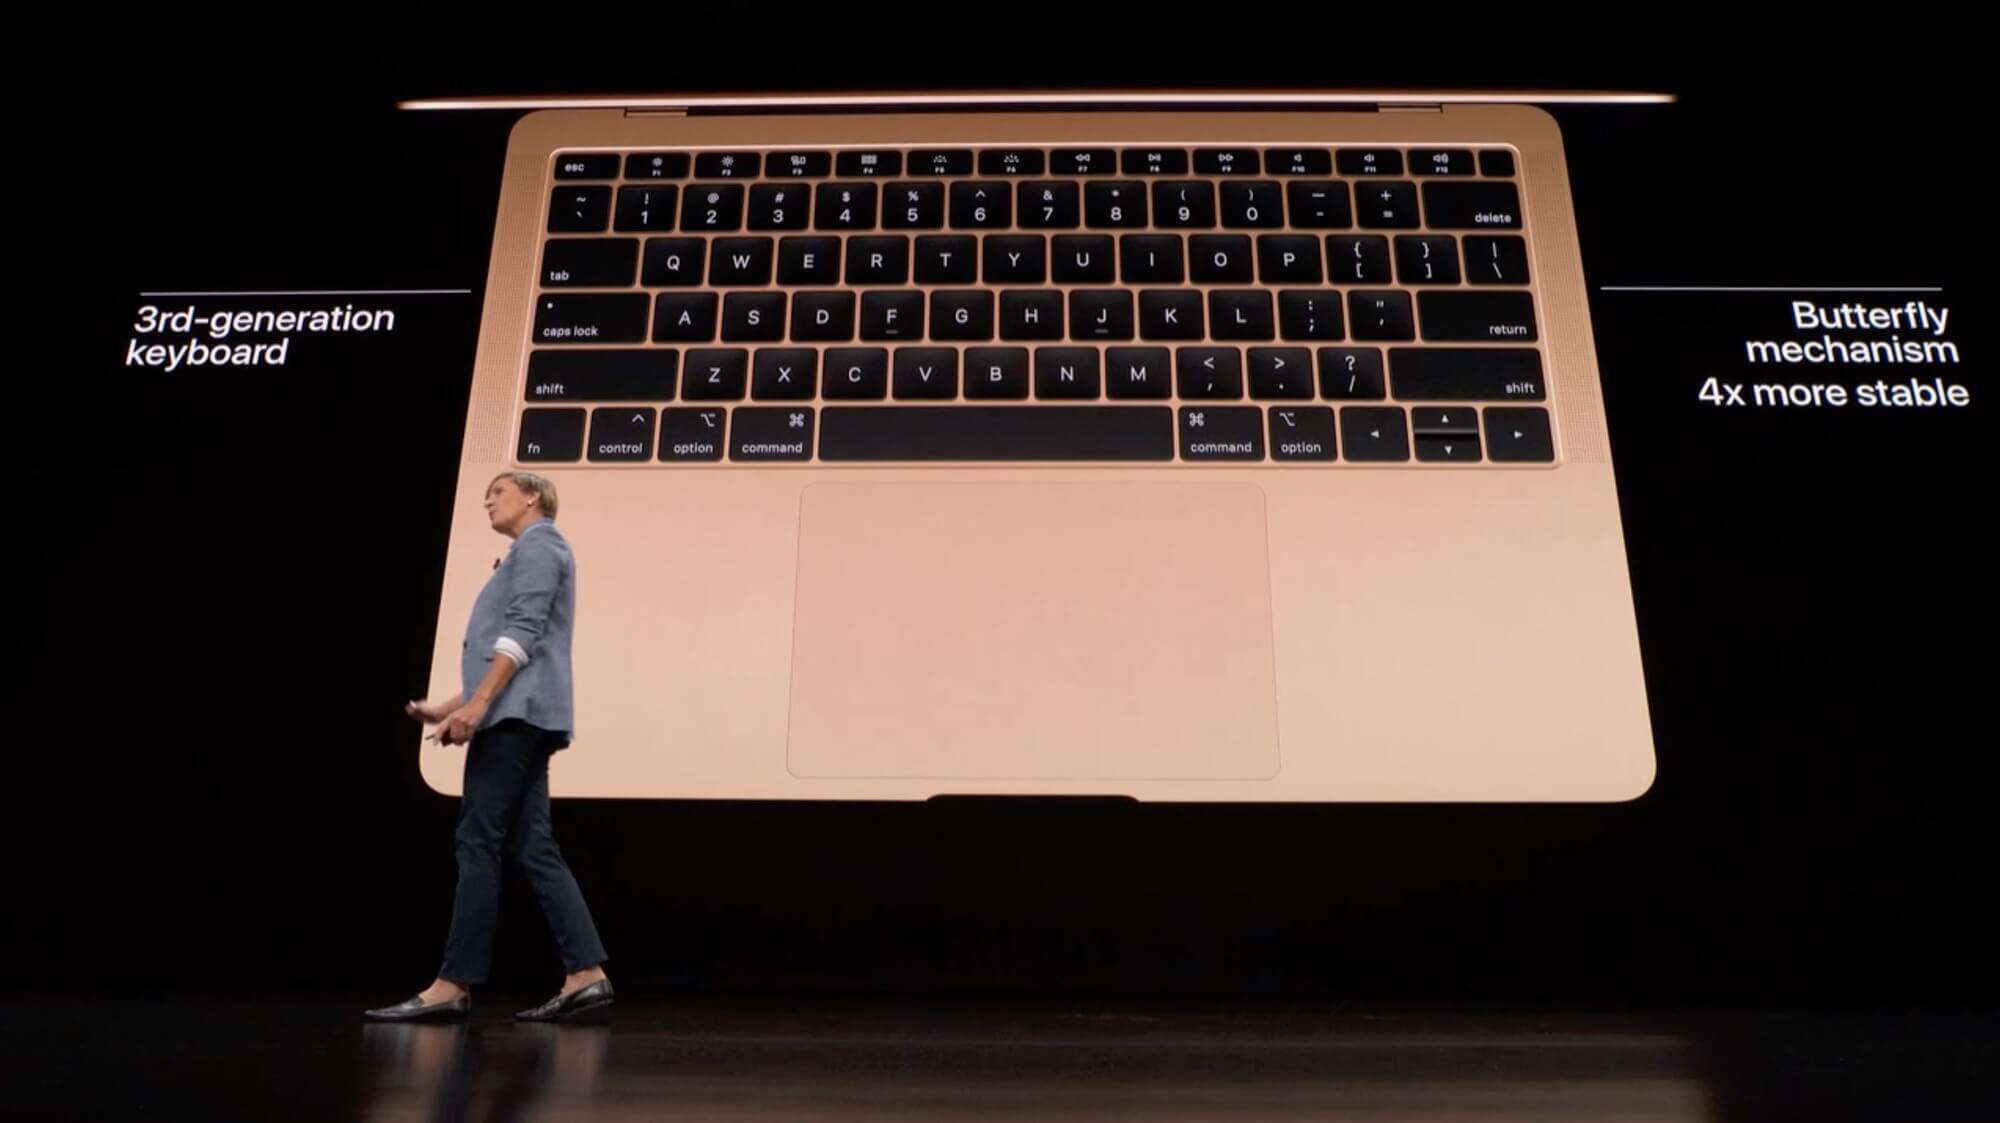 ban phim macbook air 2019